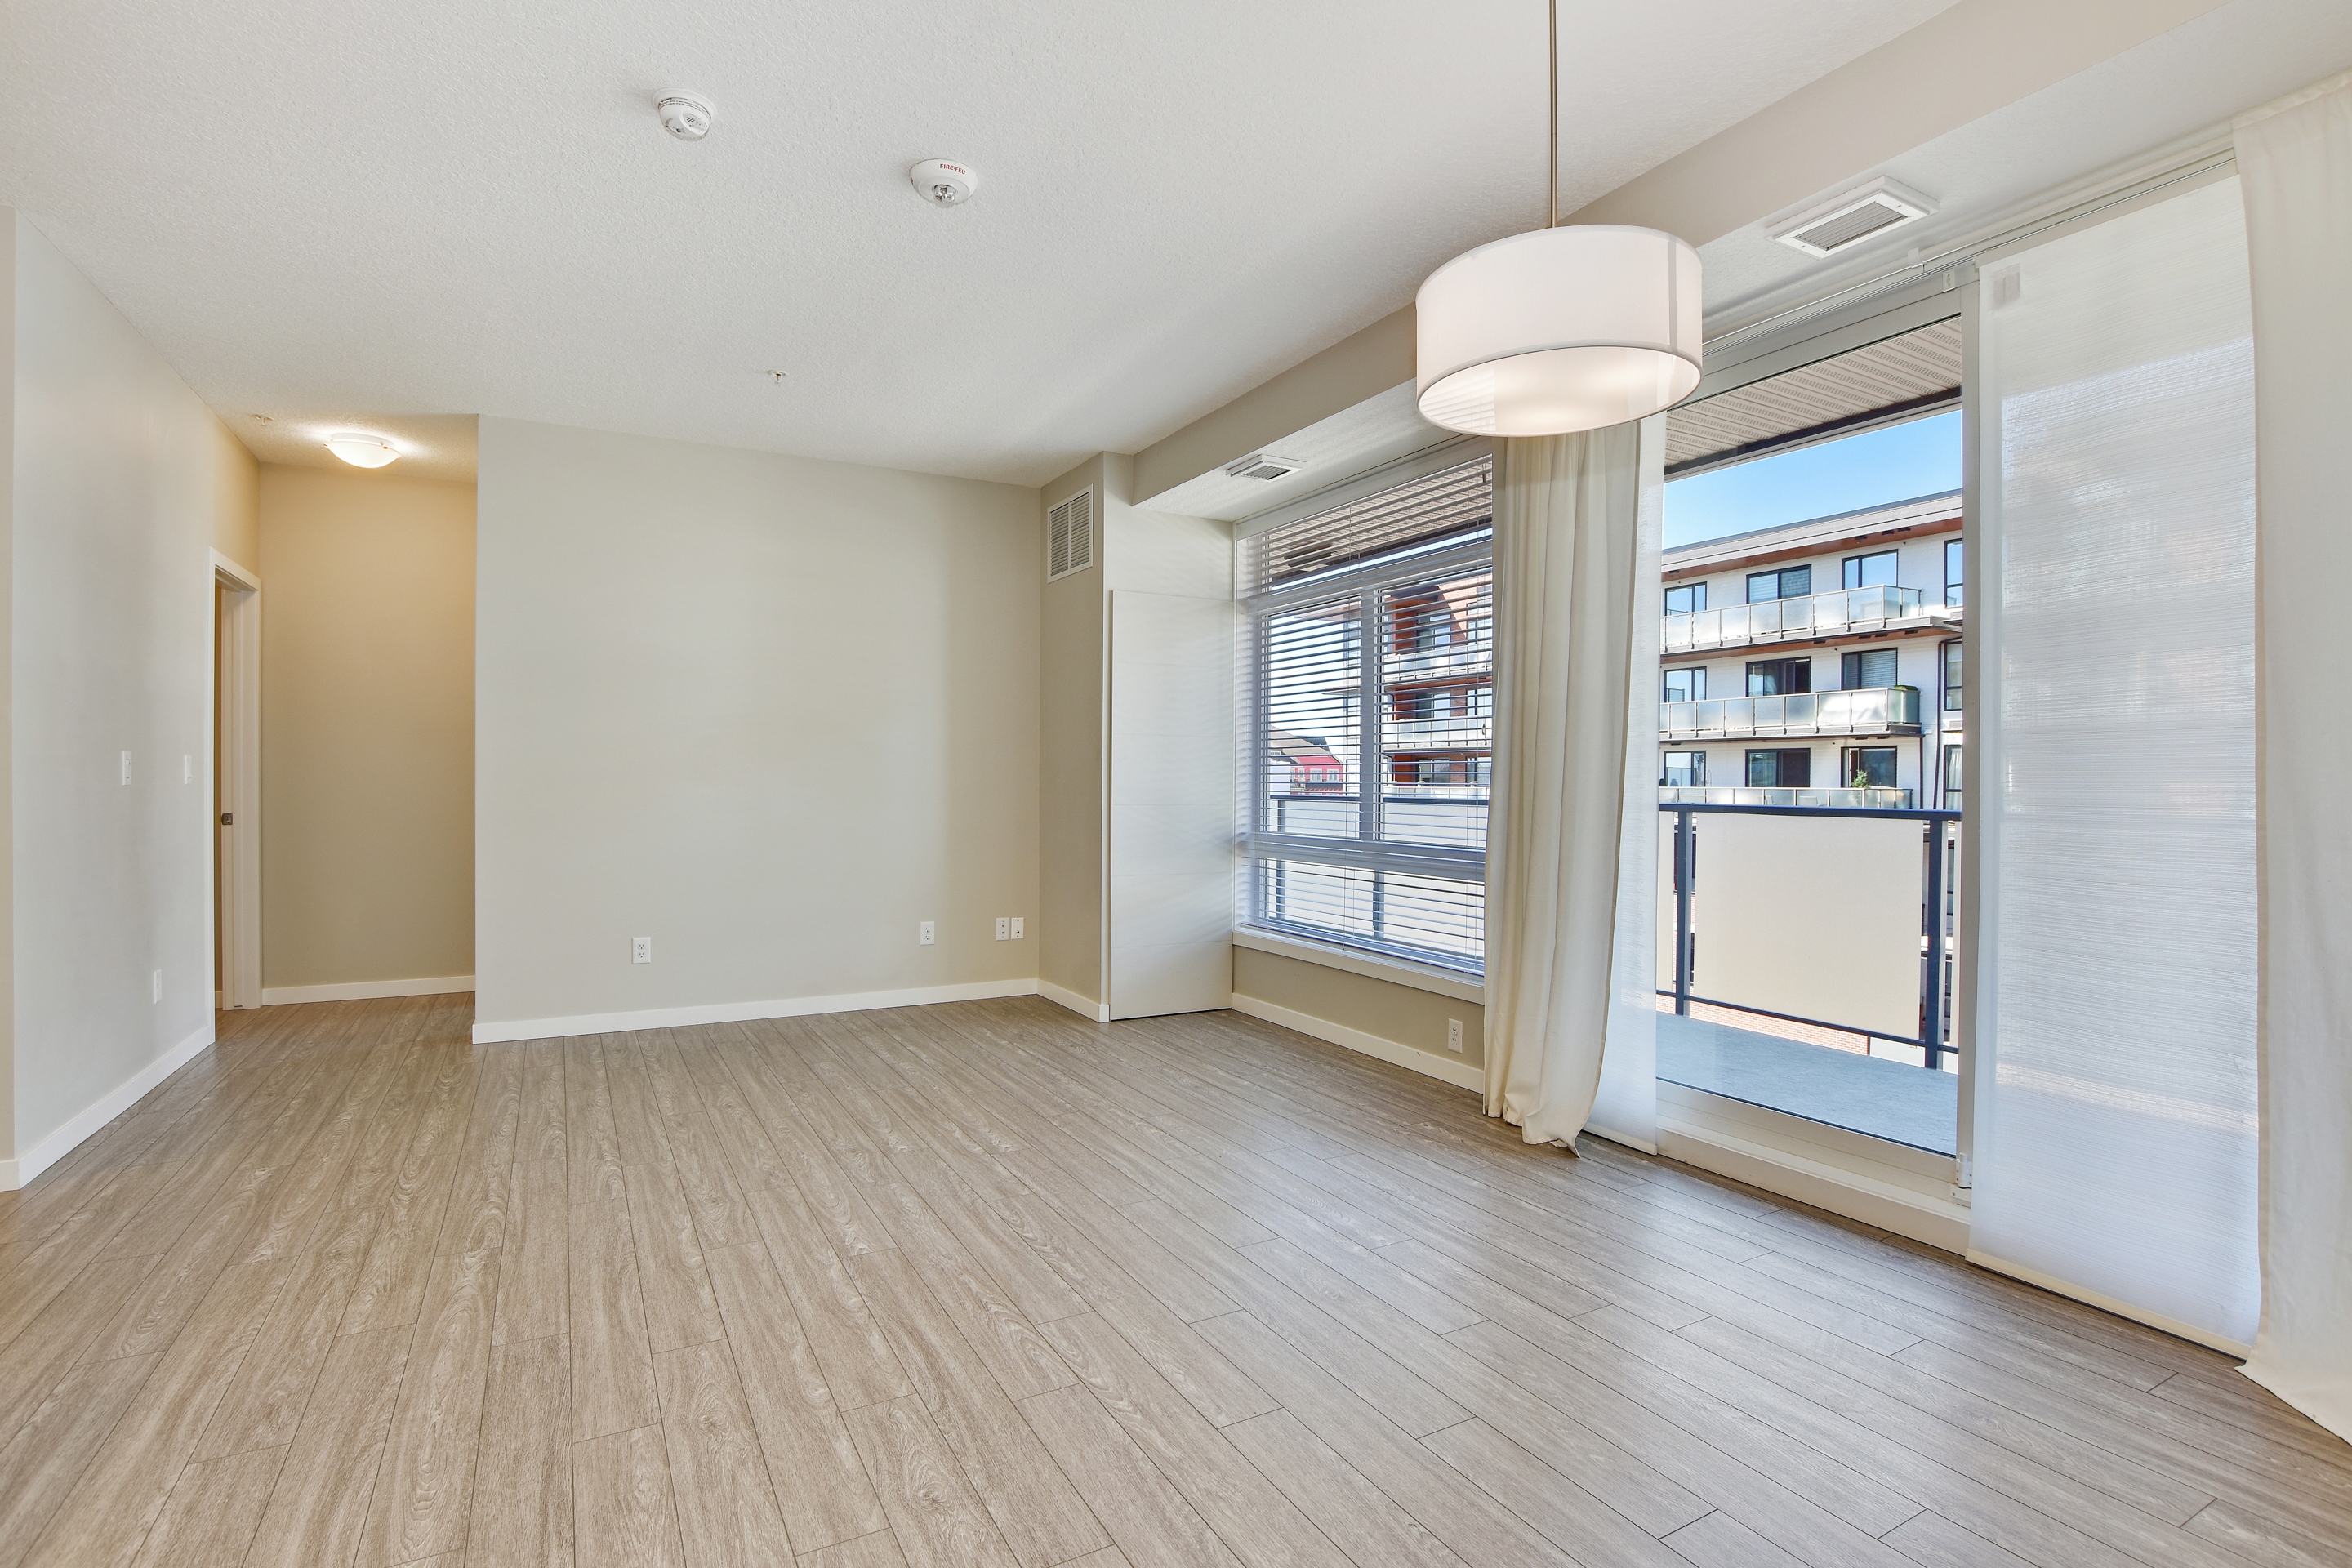 411, 121 Mahogany Center SE, Calgary, Alberta T3M 0T2, 2 Bedrooms Bedrooms, ,2 BathroomsBathrooms,Apartment,For Rent,Lyric,Mahogany Center,411,1068